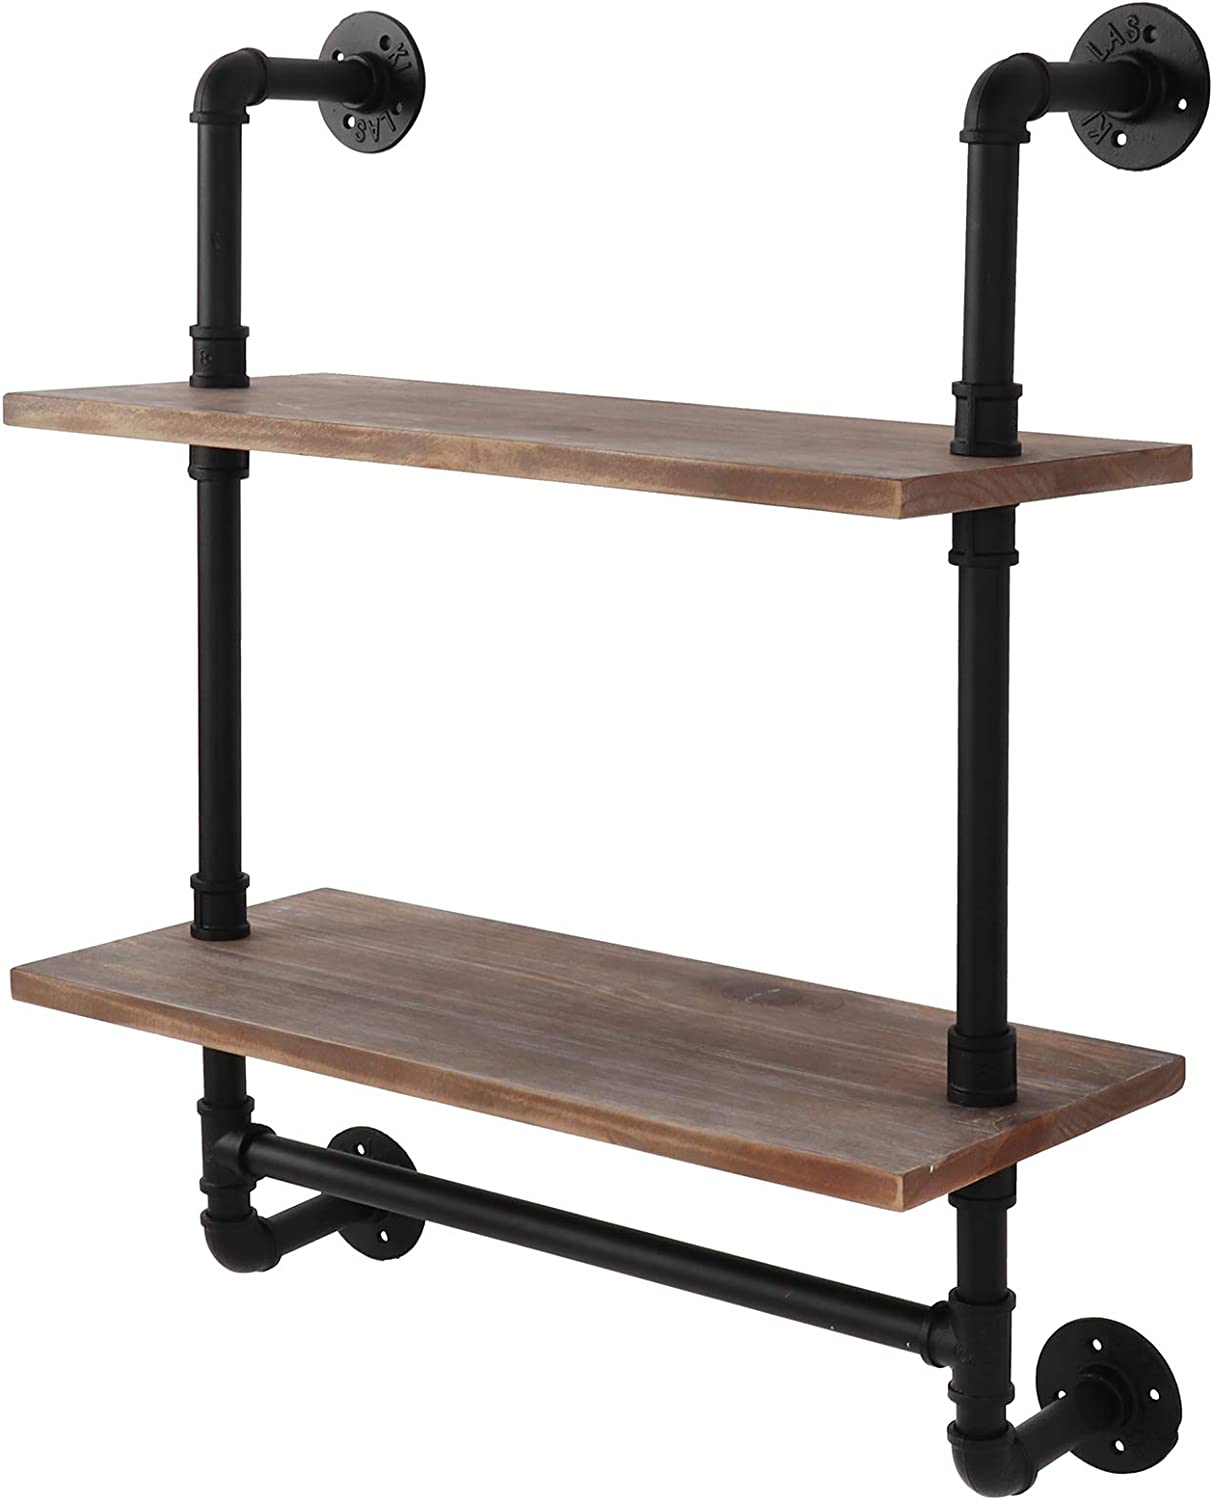 Bathroom Shelf Industrial Pipe Shelves Wall Portland Mall Limited Special Price 2-T Mounted